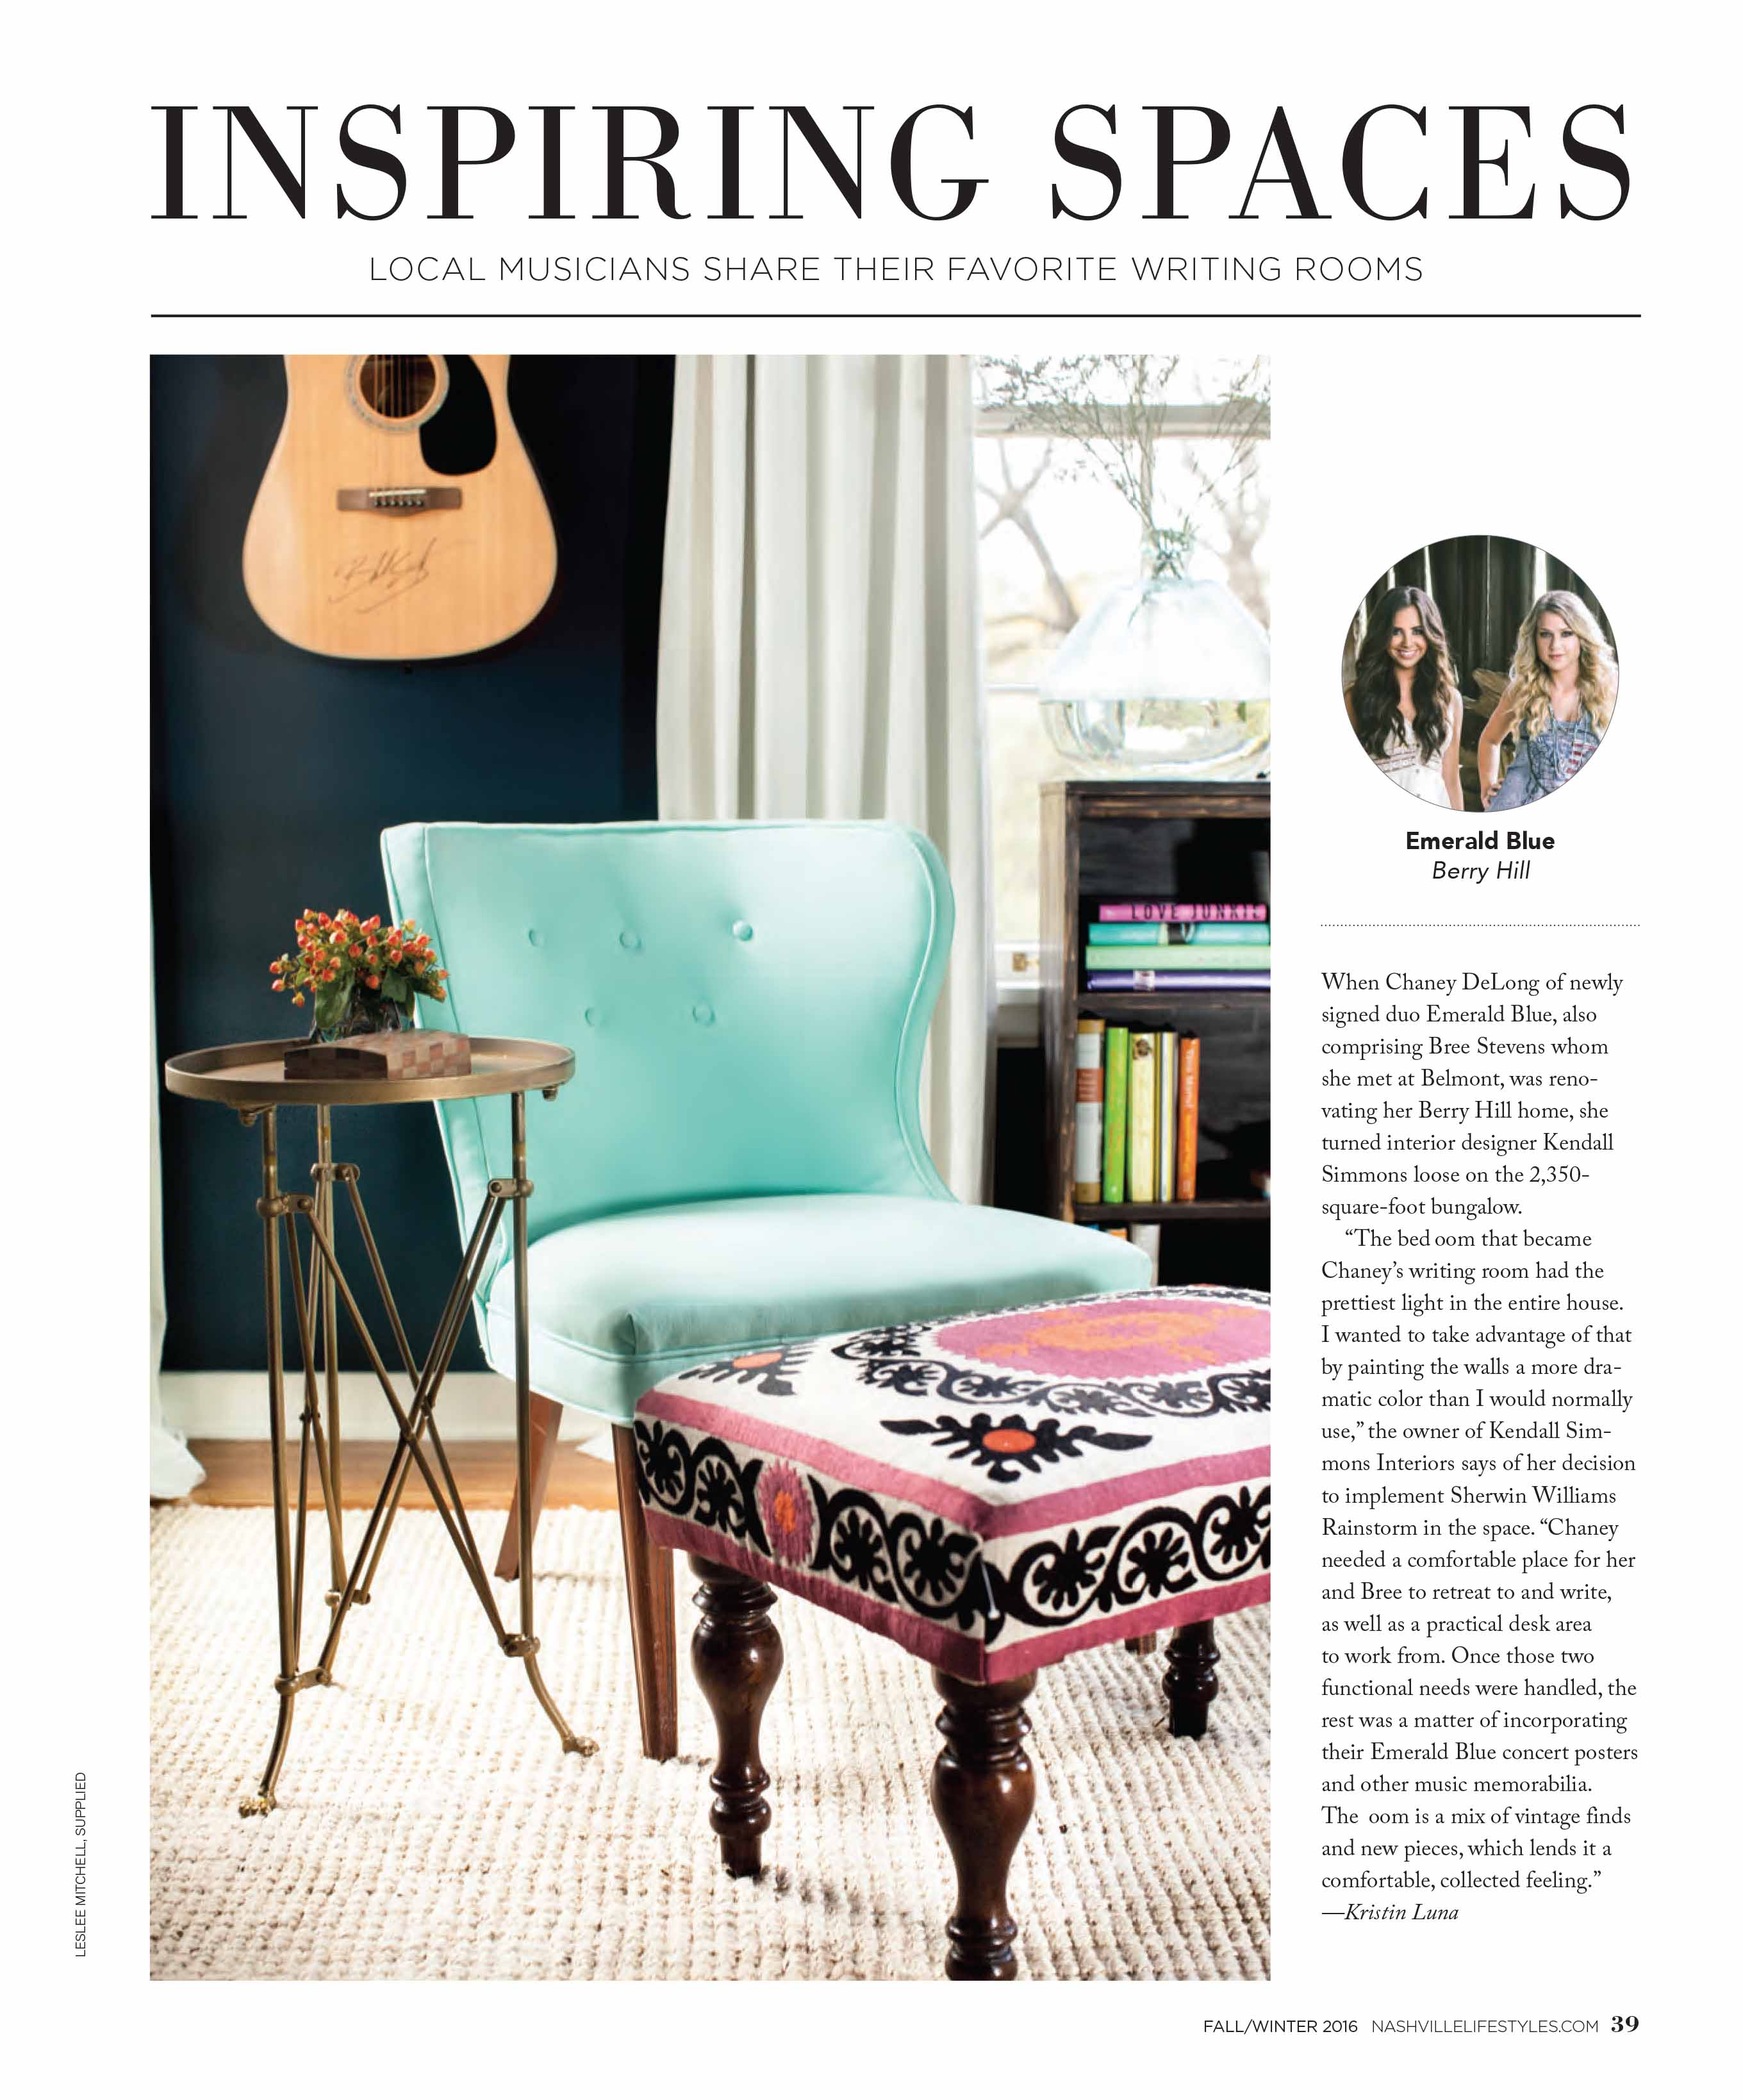 Inspiring Spaces in Nashville Lifestyles